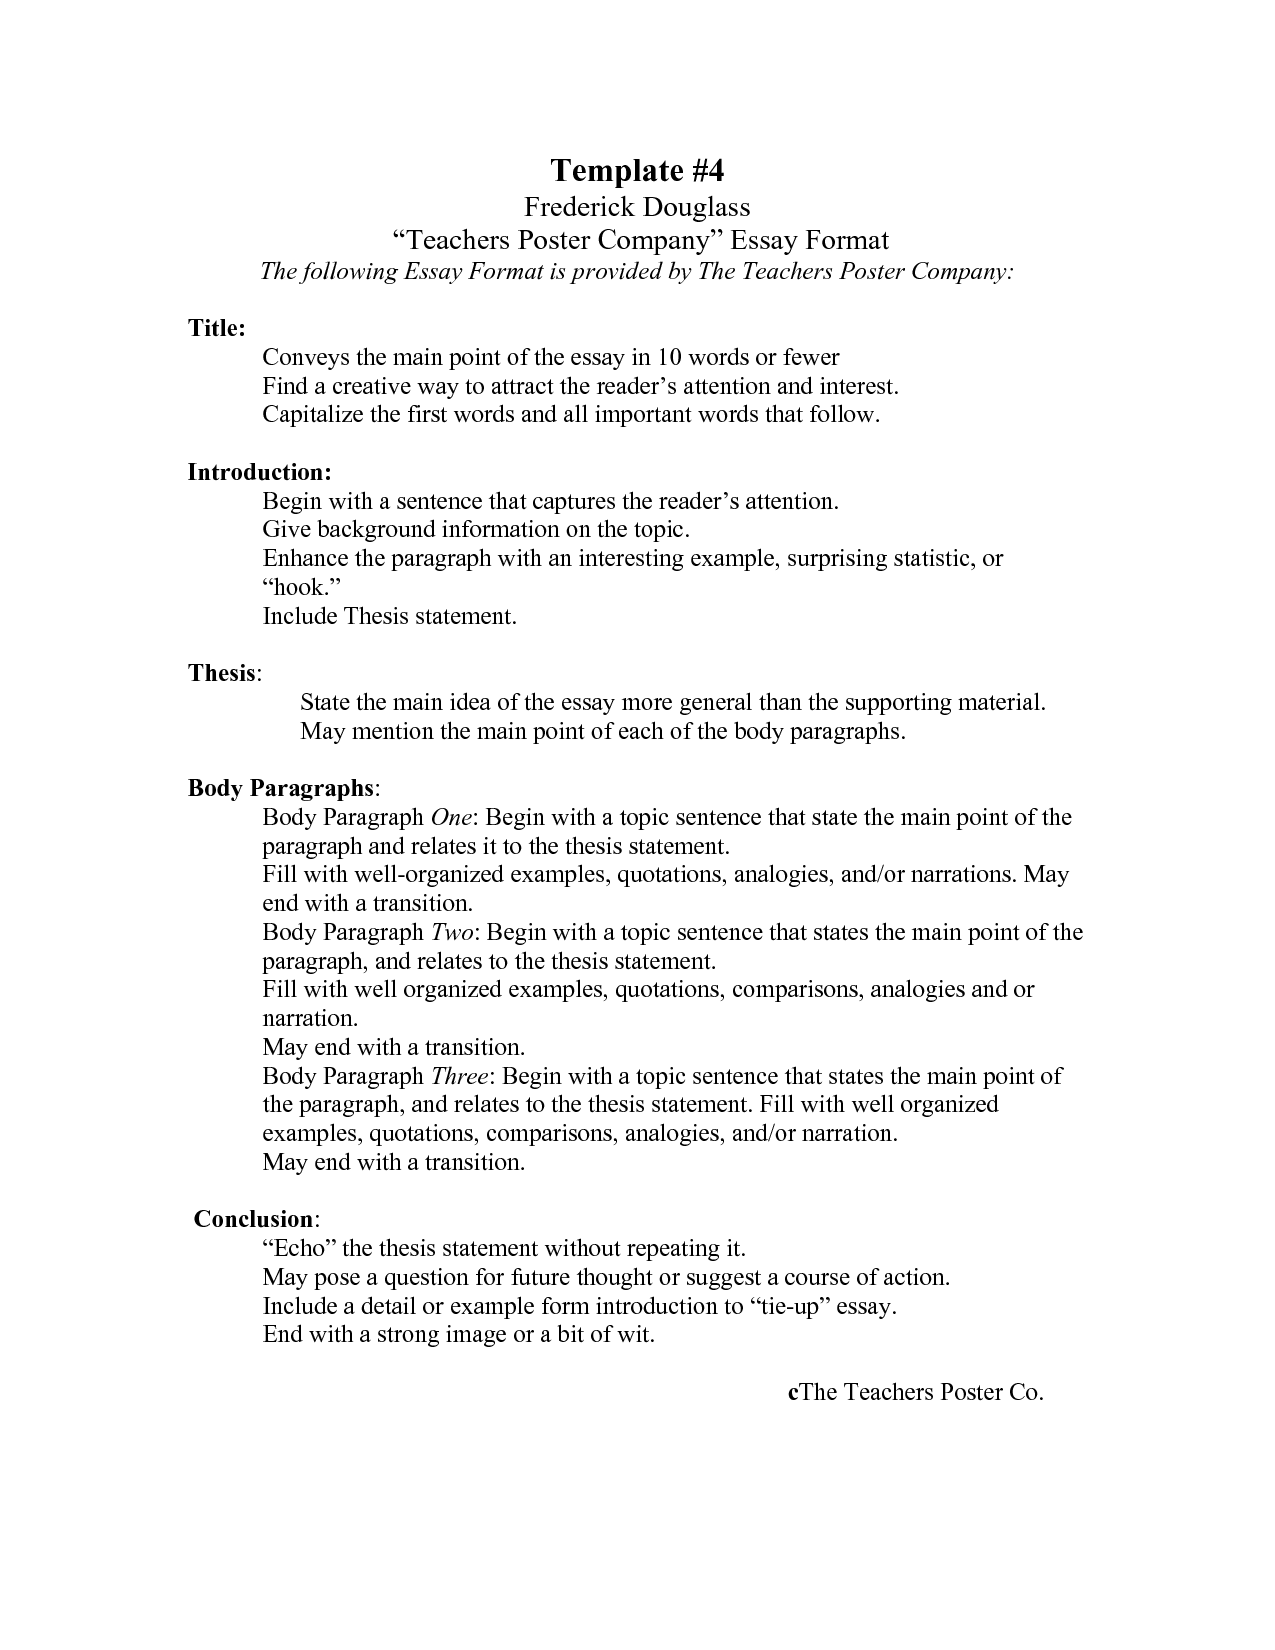 examples of essay outlines format sample essay outlines a level a efce a a cac f f e c jpg essays and papers